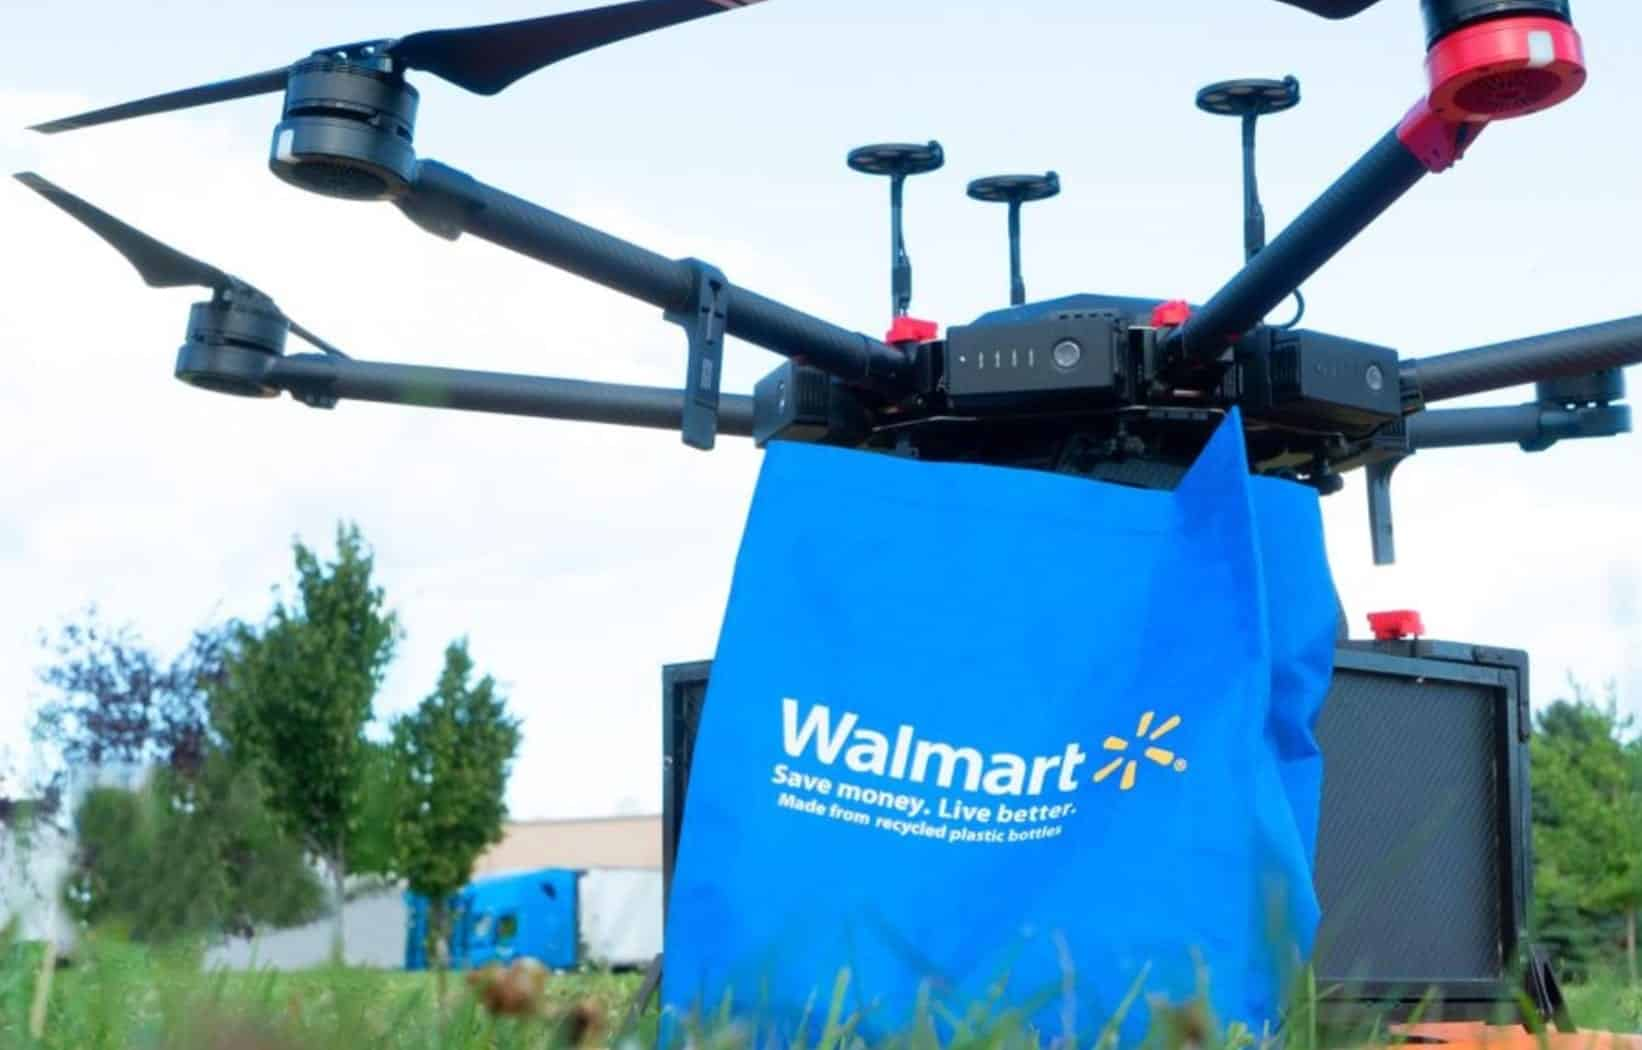 Walmart tests delivery drones in effort to keep up with Amazon